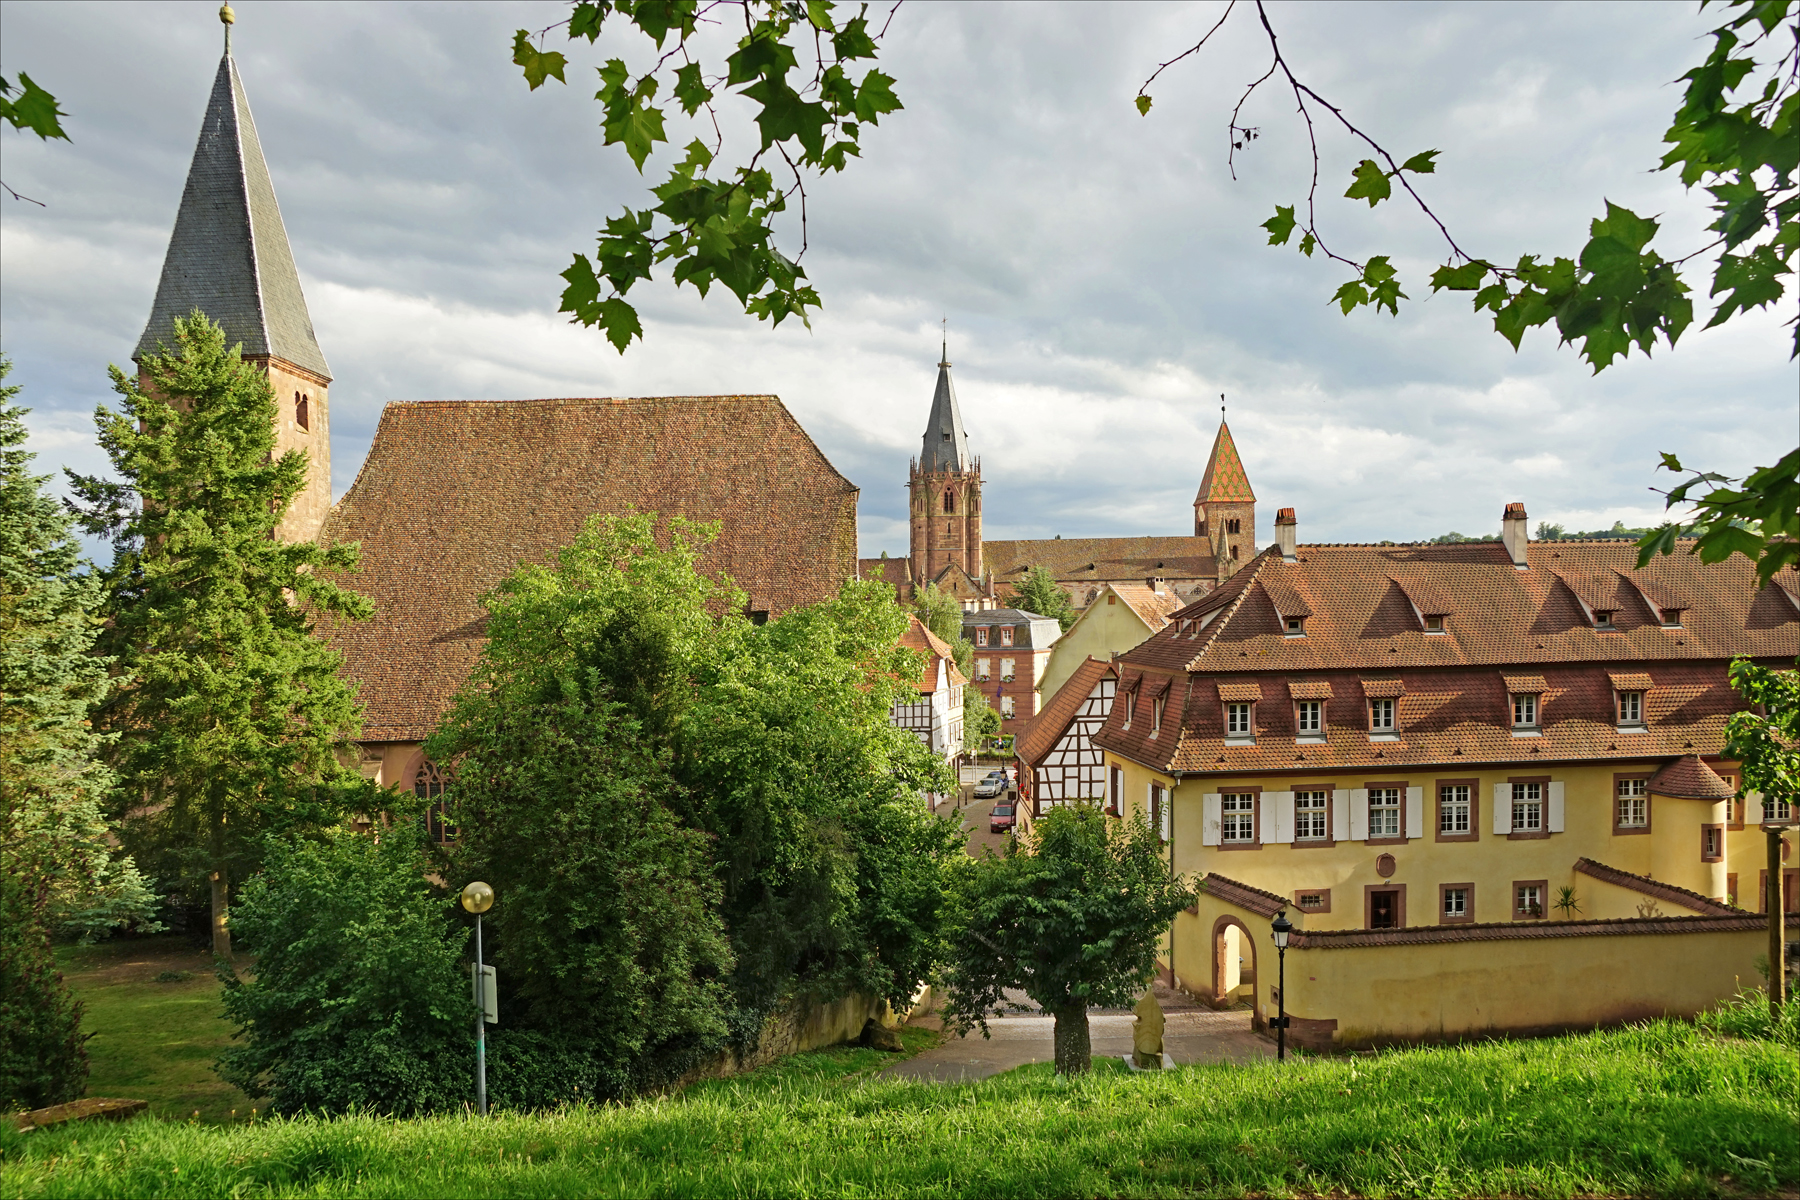 A general view of Wissembourg